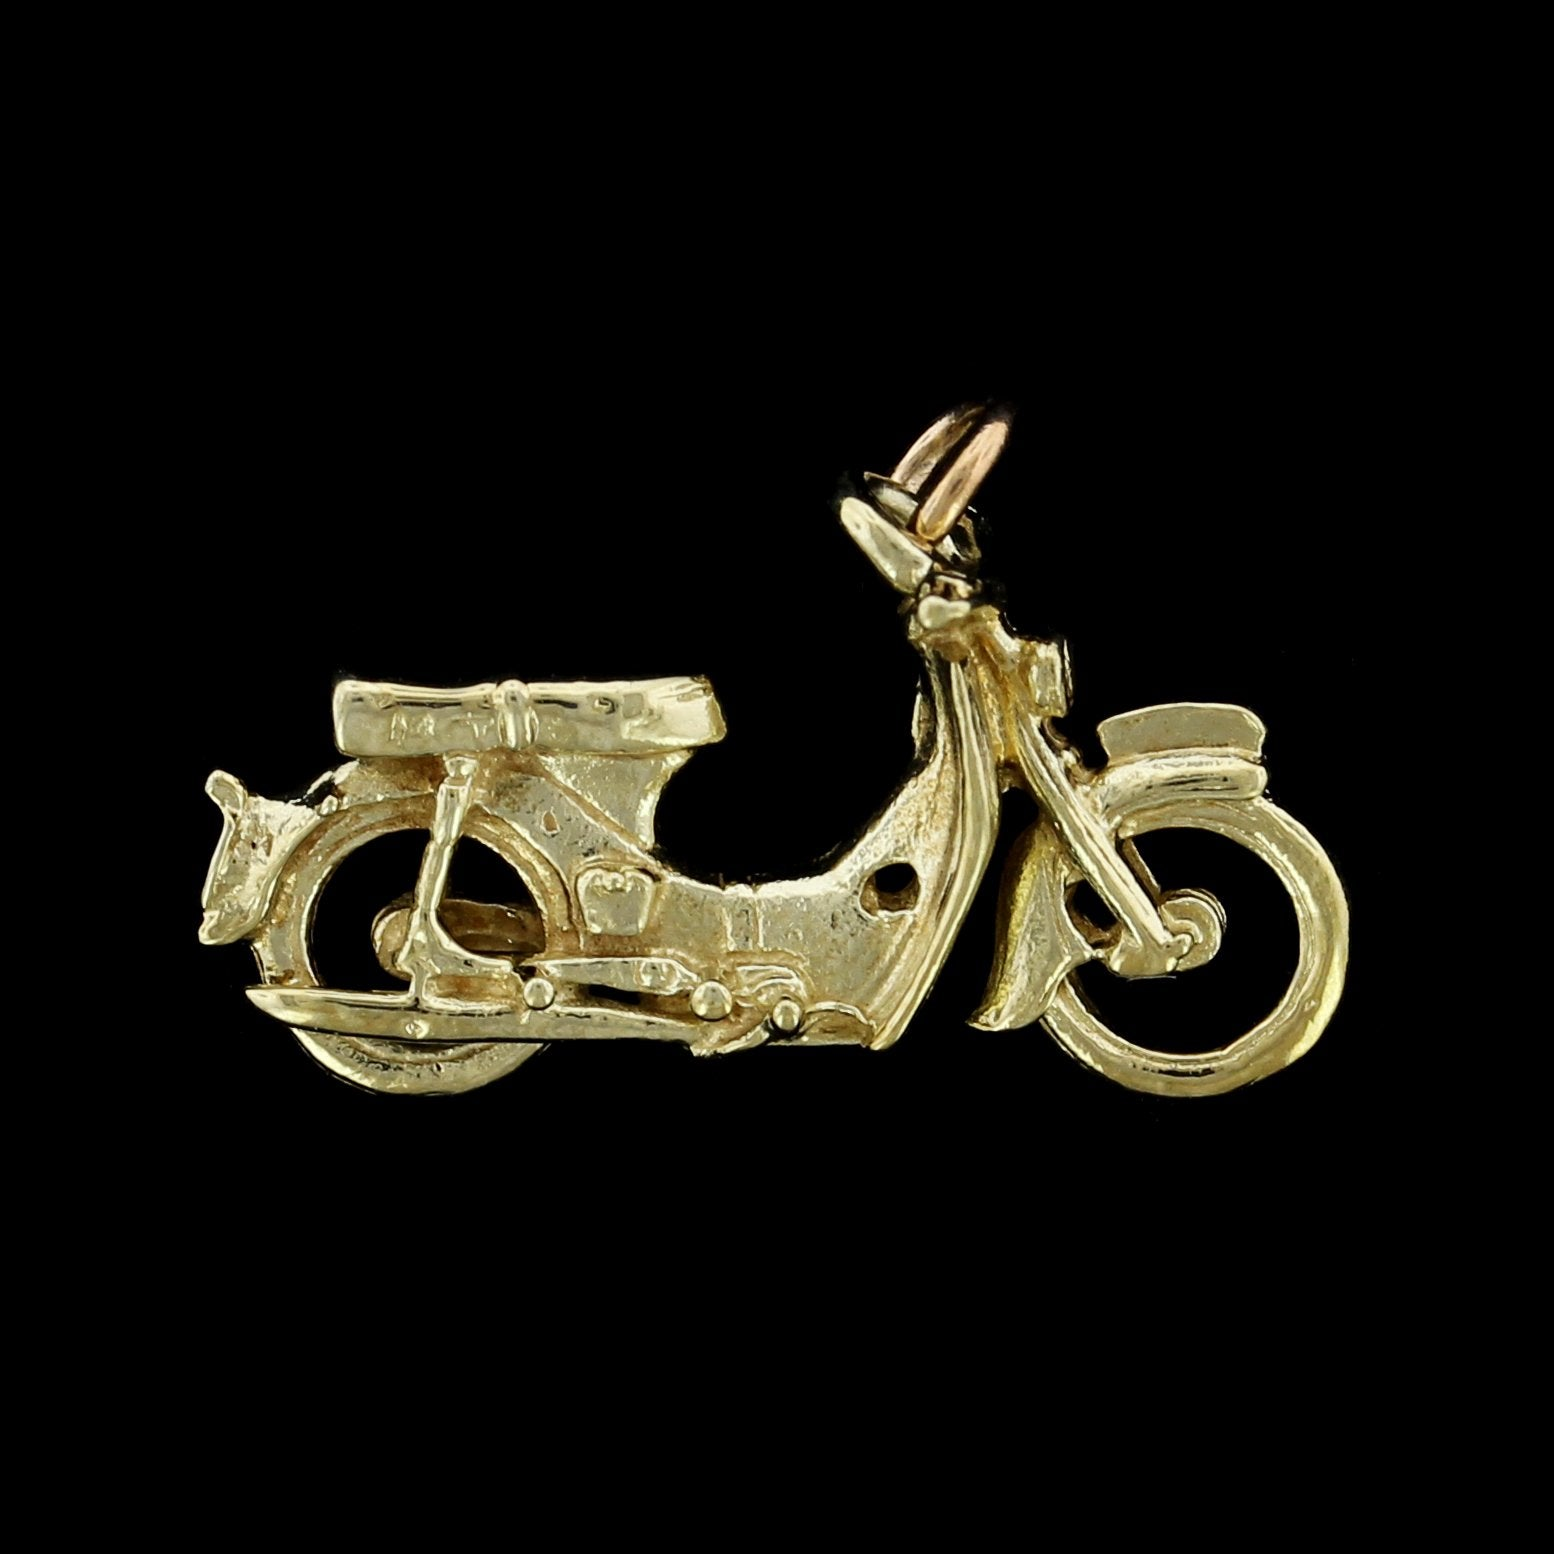 14K Yellow Gold Estate Motorcycle Charm